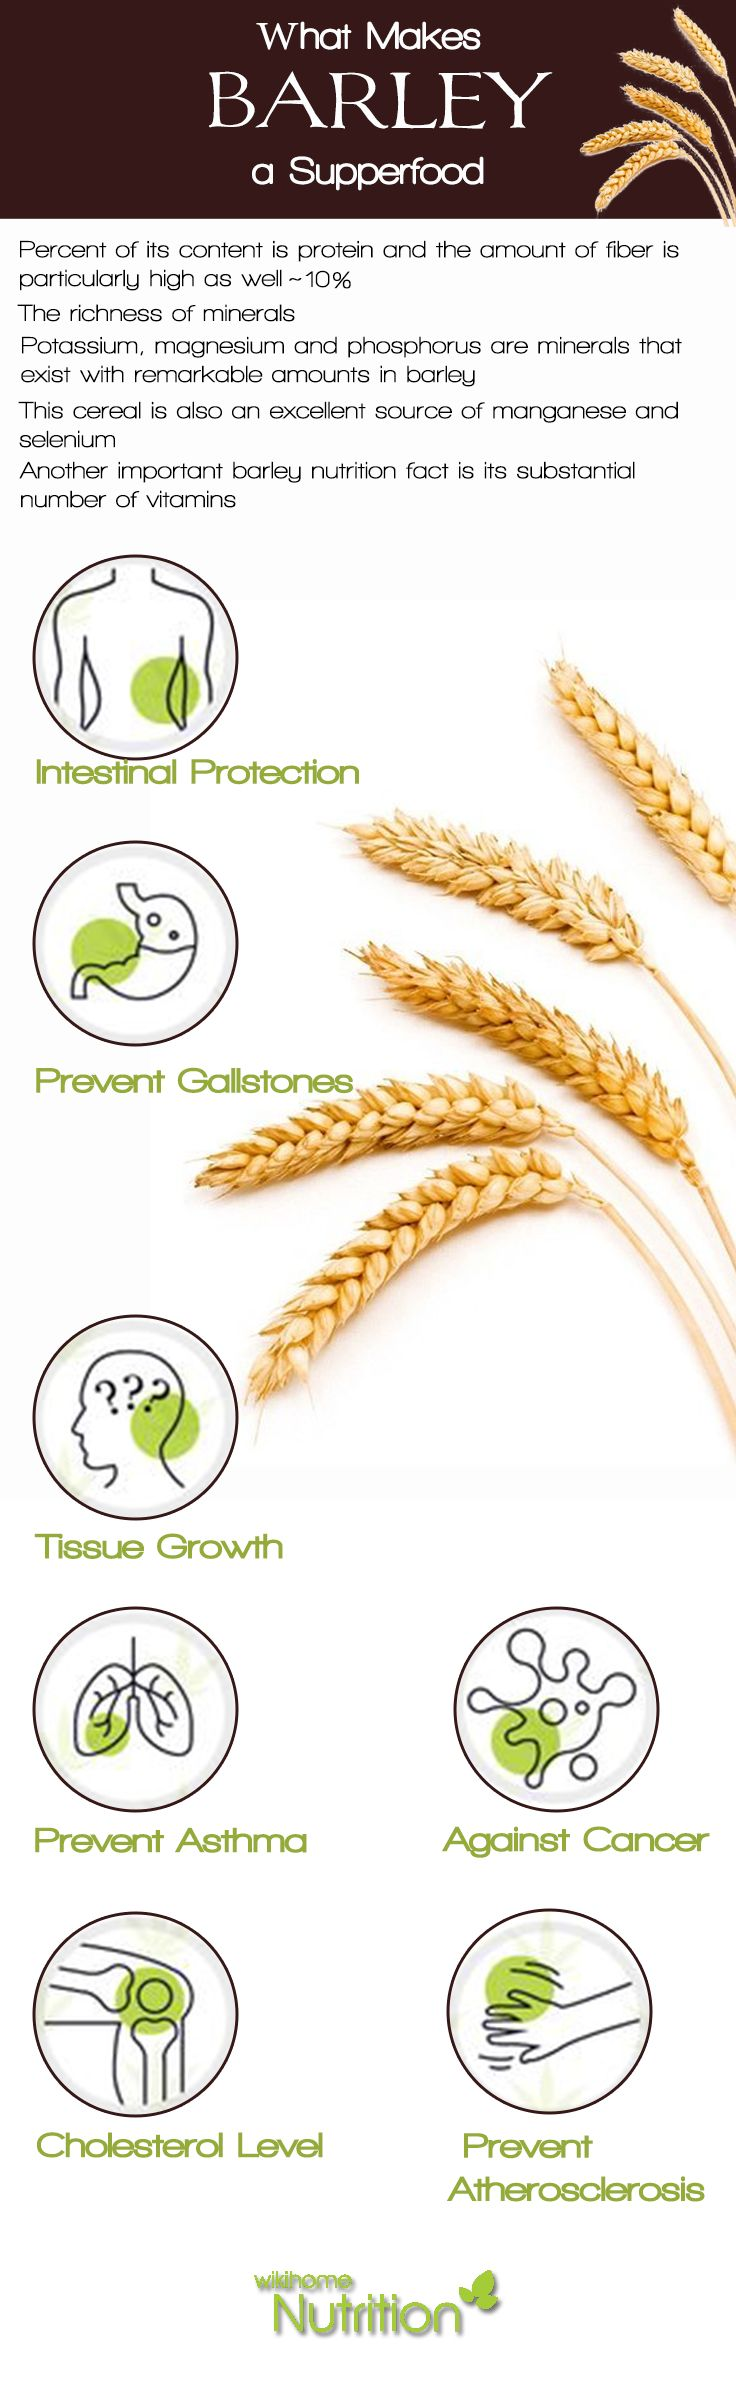 Barley: Nutrition Facts and #HealthBenefits: What makes #barley a #supperfood